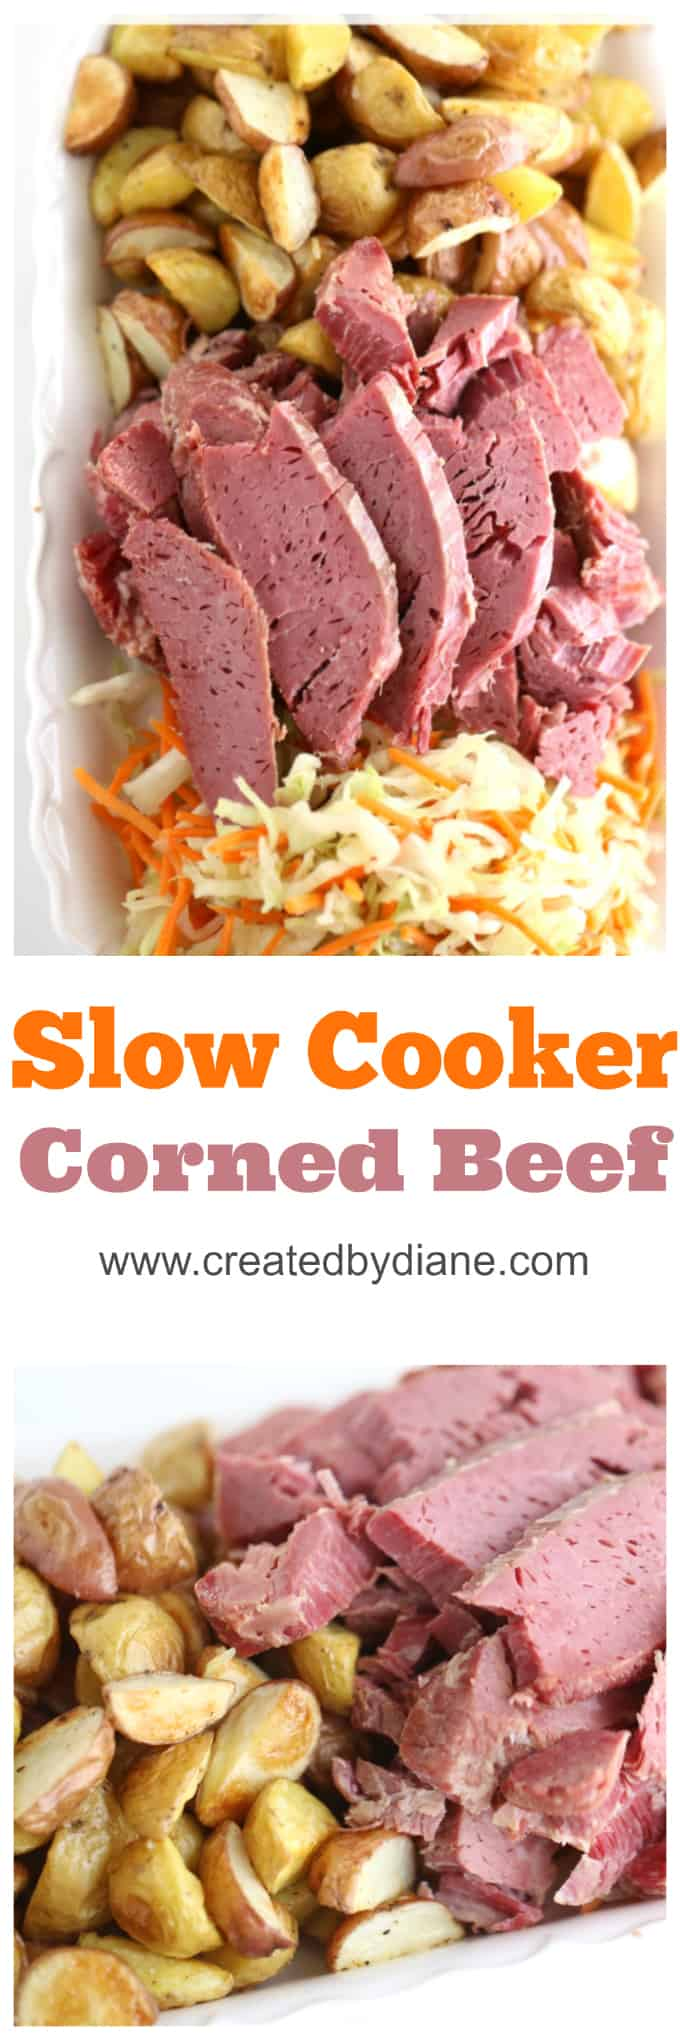 sliced corned beef from the slow cooker with roasted potatoes